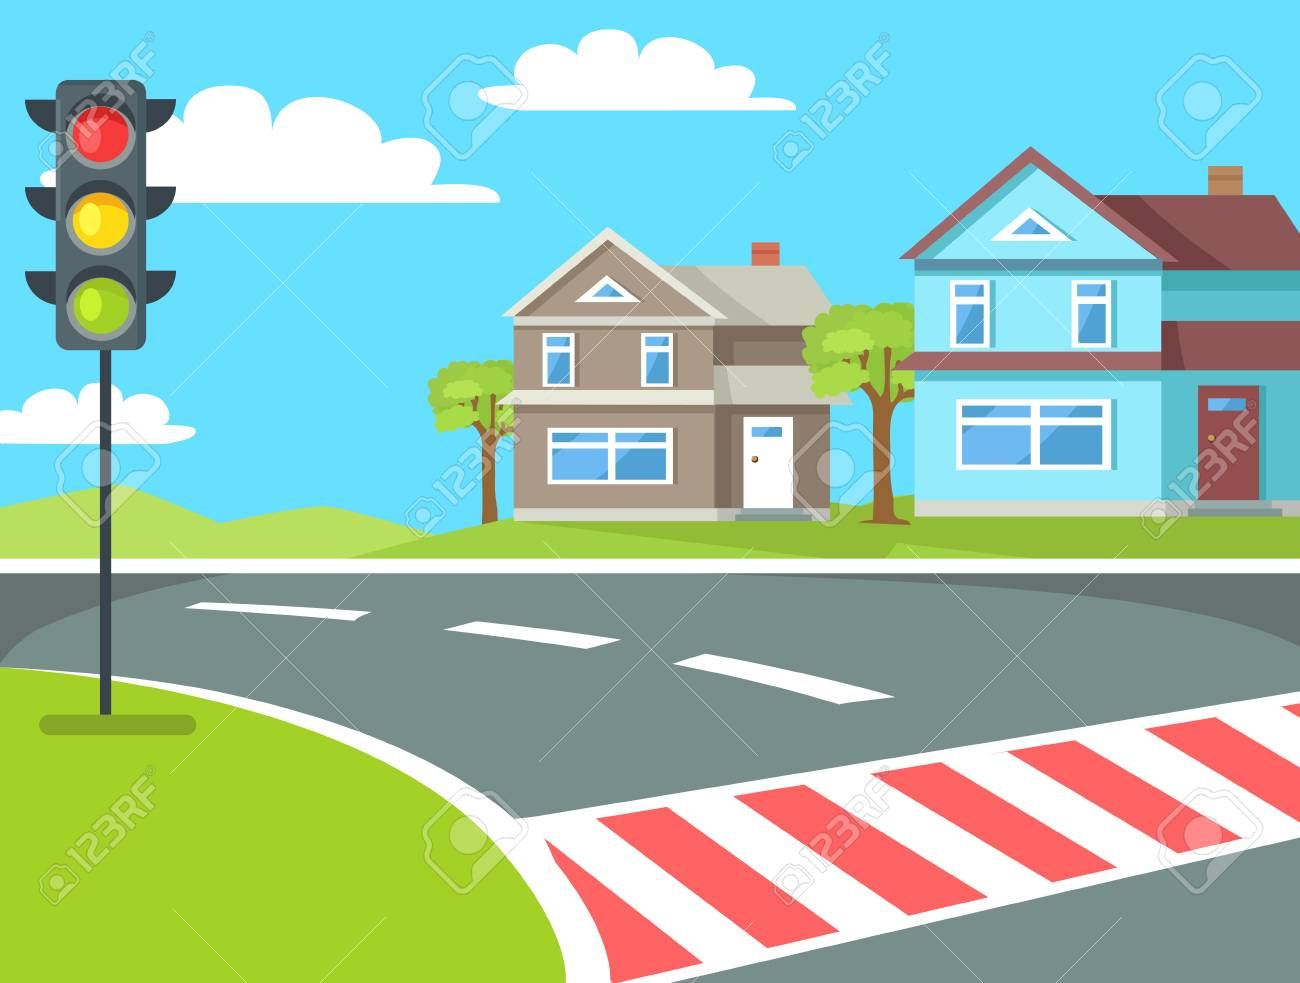 Pedestrian crossing with traffic lights sign on the road at rural countryside vector illustration. Home buildings on background of blue sky - 112403999